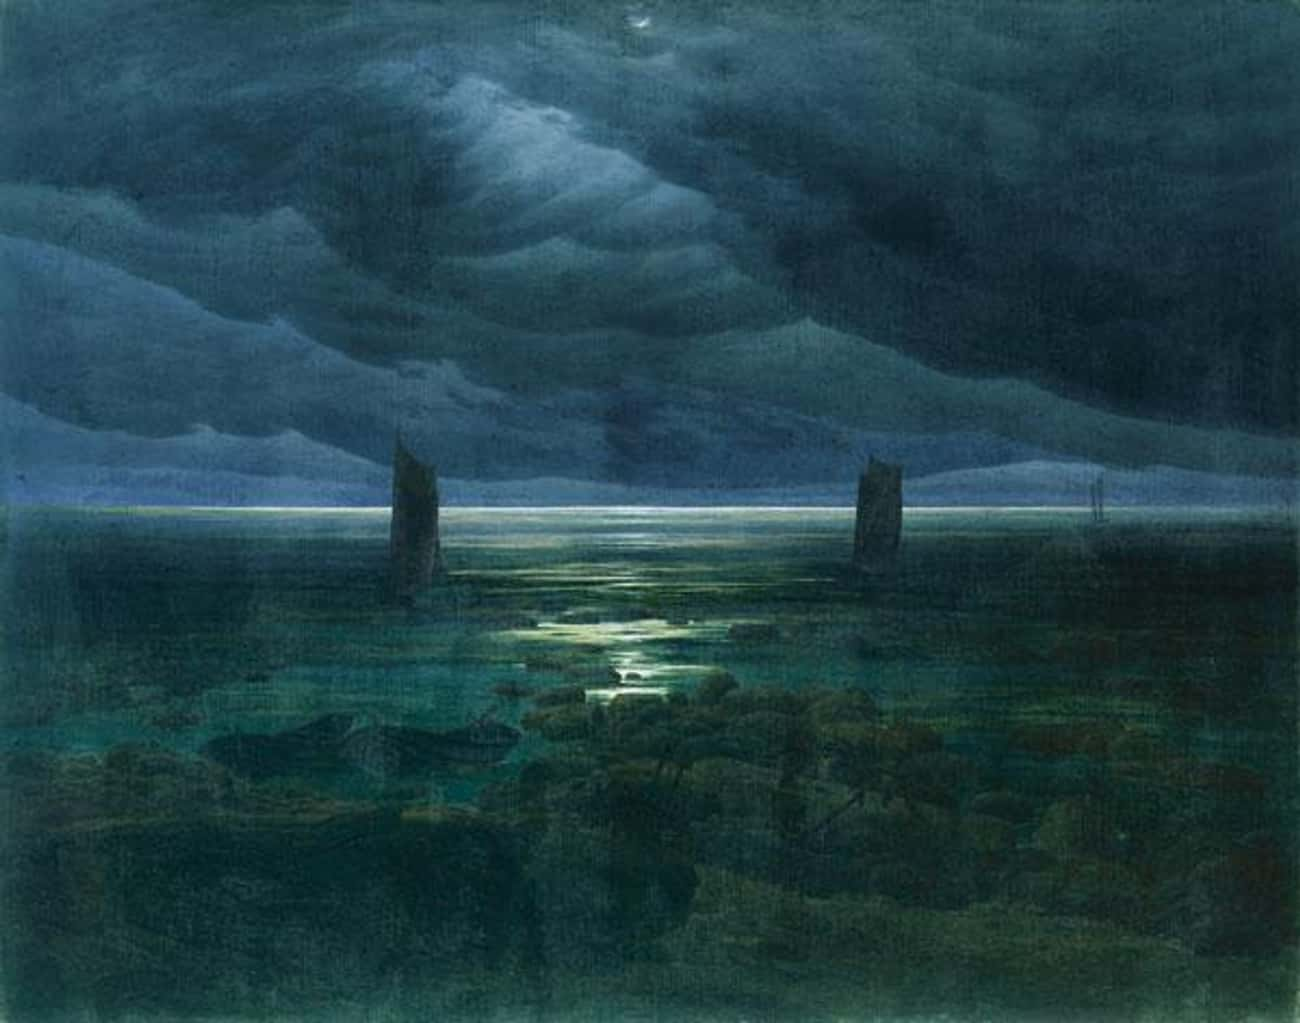 Seashore by Moonlight is listed (or ranked) 3 on the list Famous German Romanticism Paintings